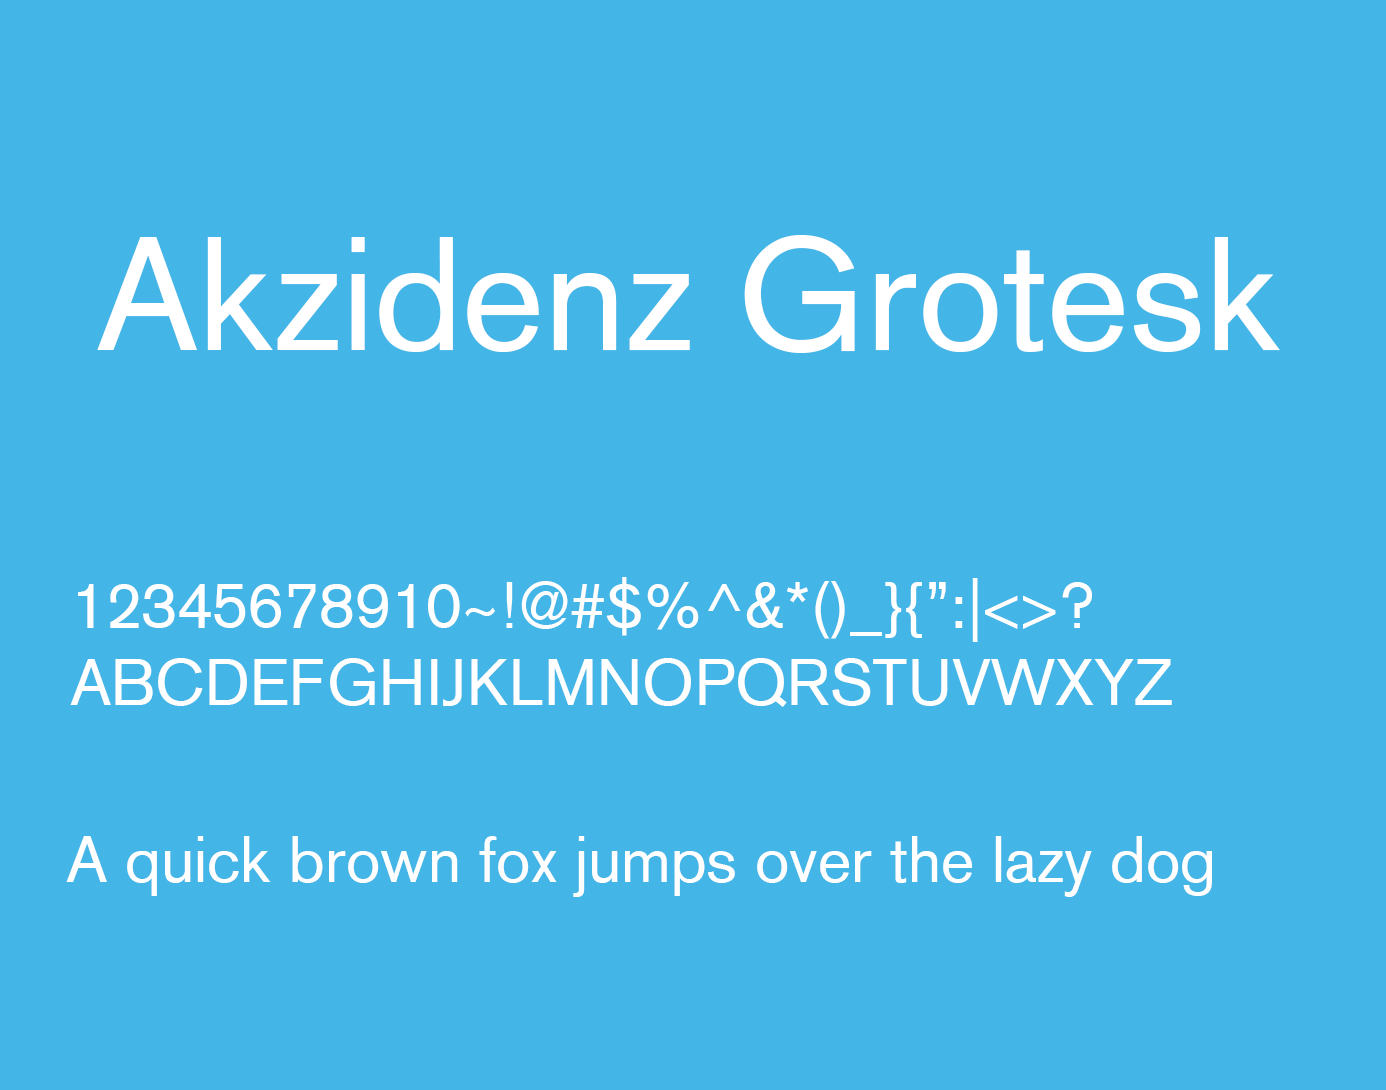 Akzidenz Grotesk Font Family Free Download | Fonts for